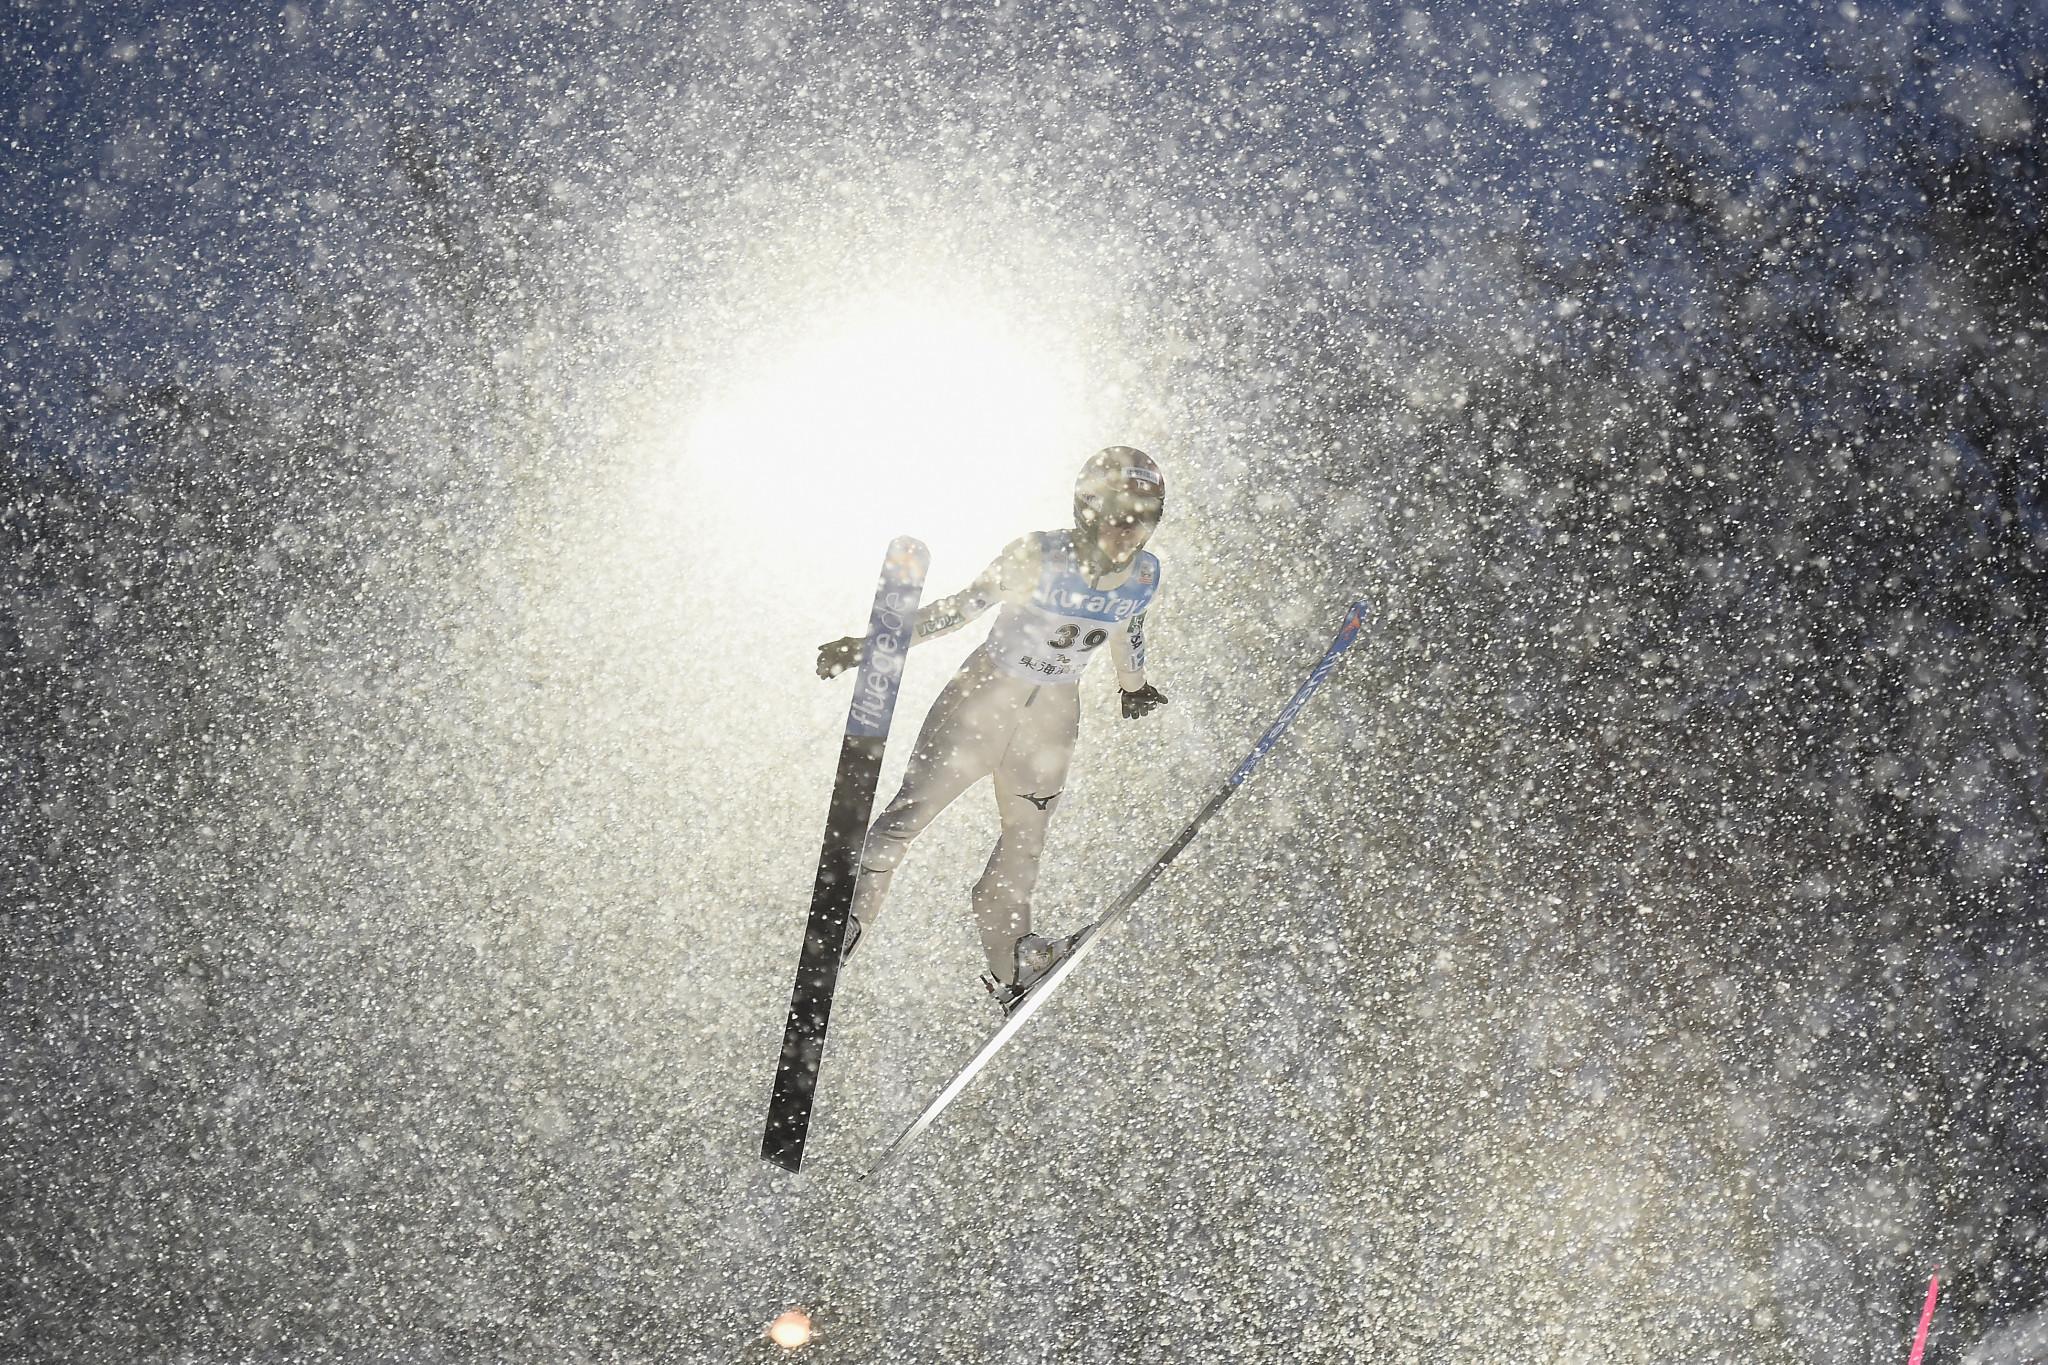 High winds and snowfall force qualifying postponement at FIS Women's Ski Jumping World Cup